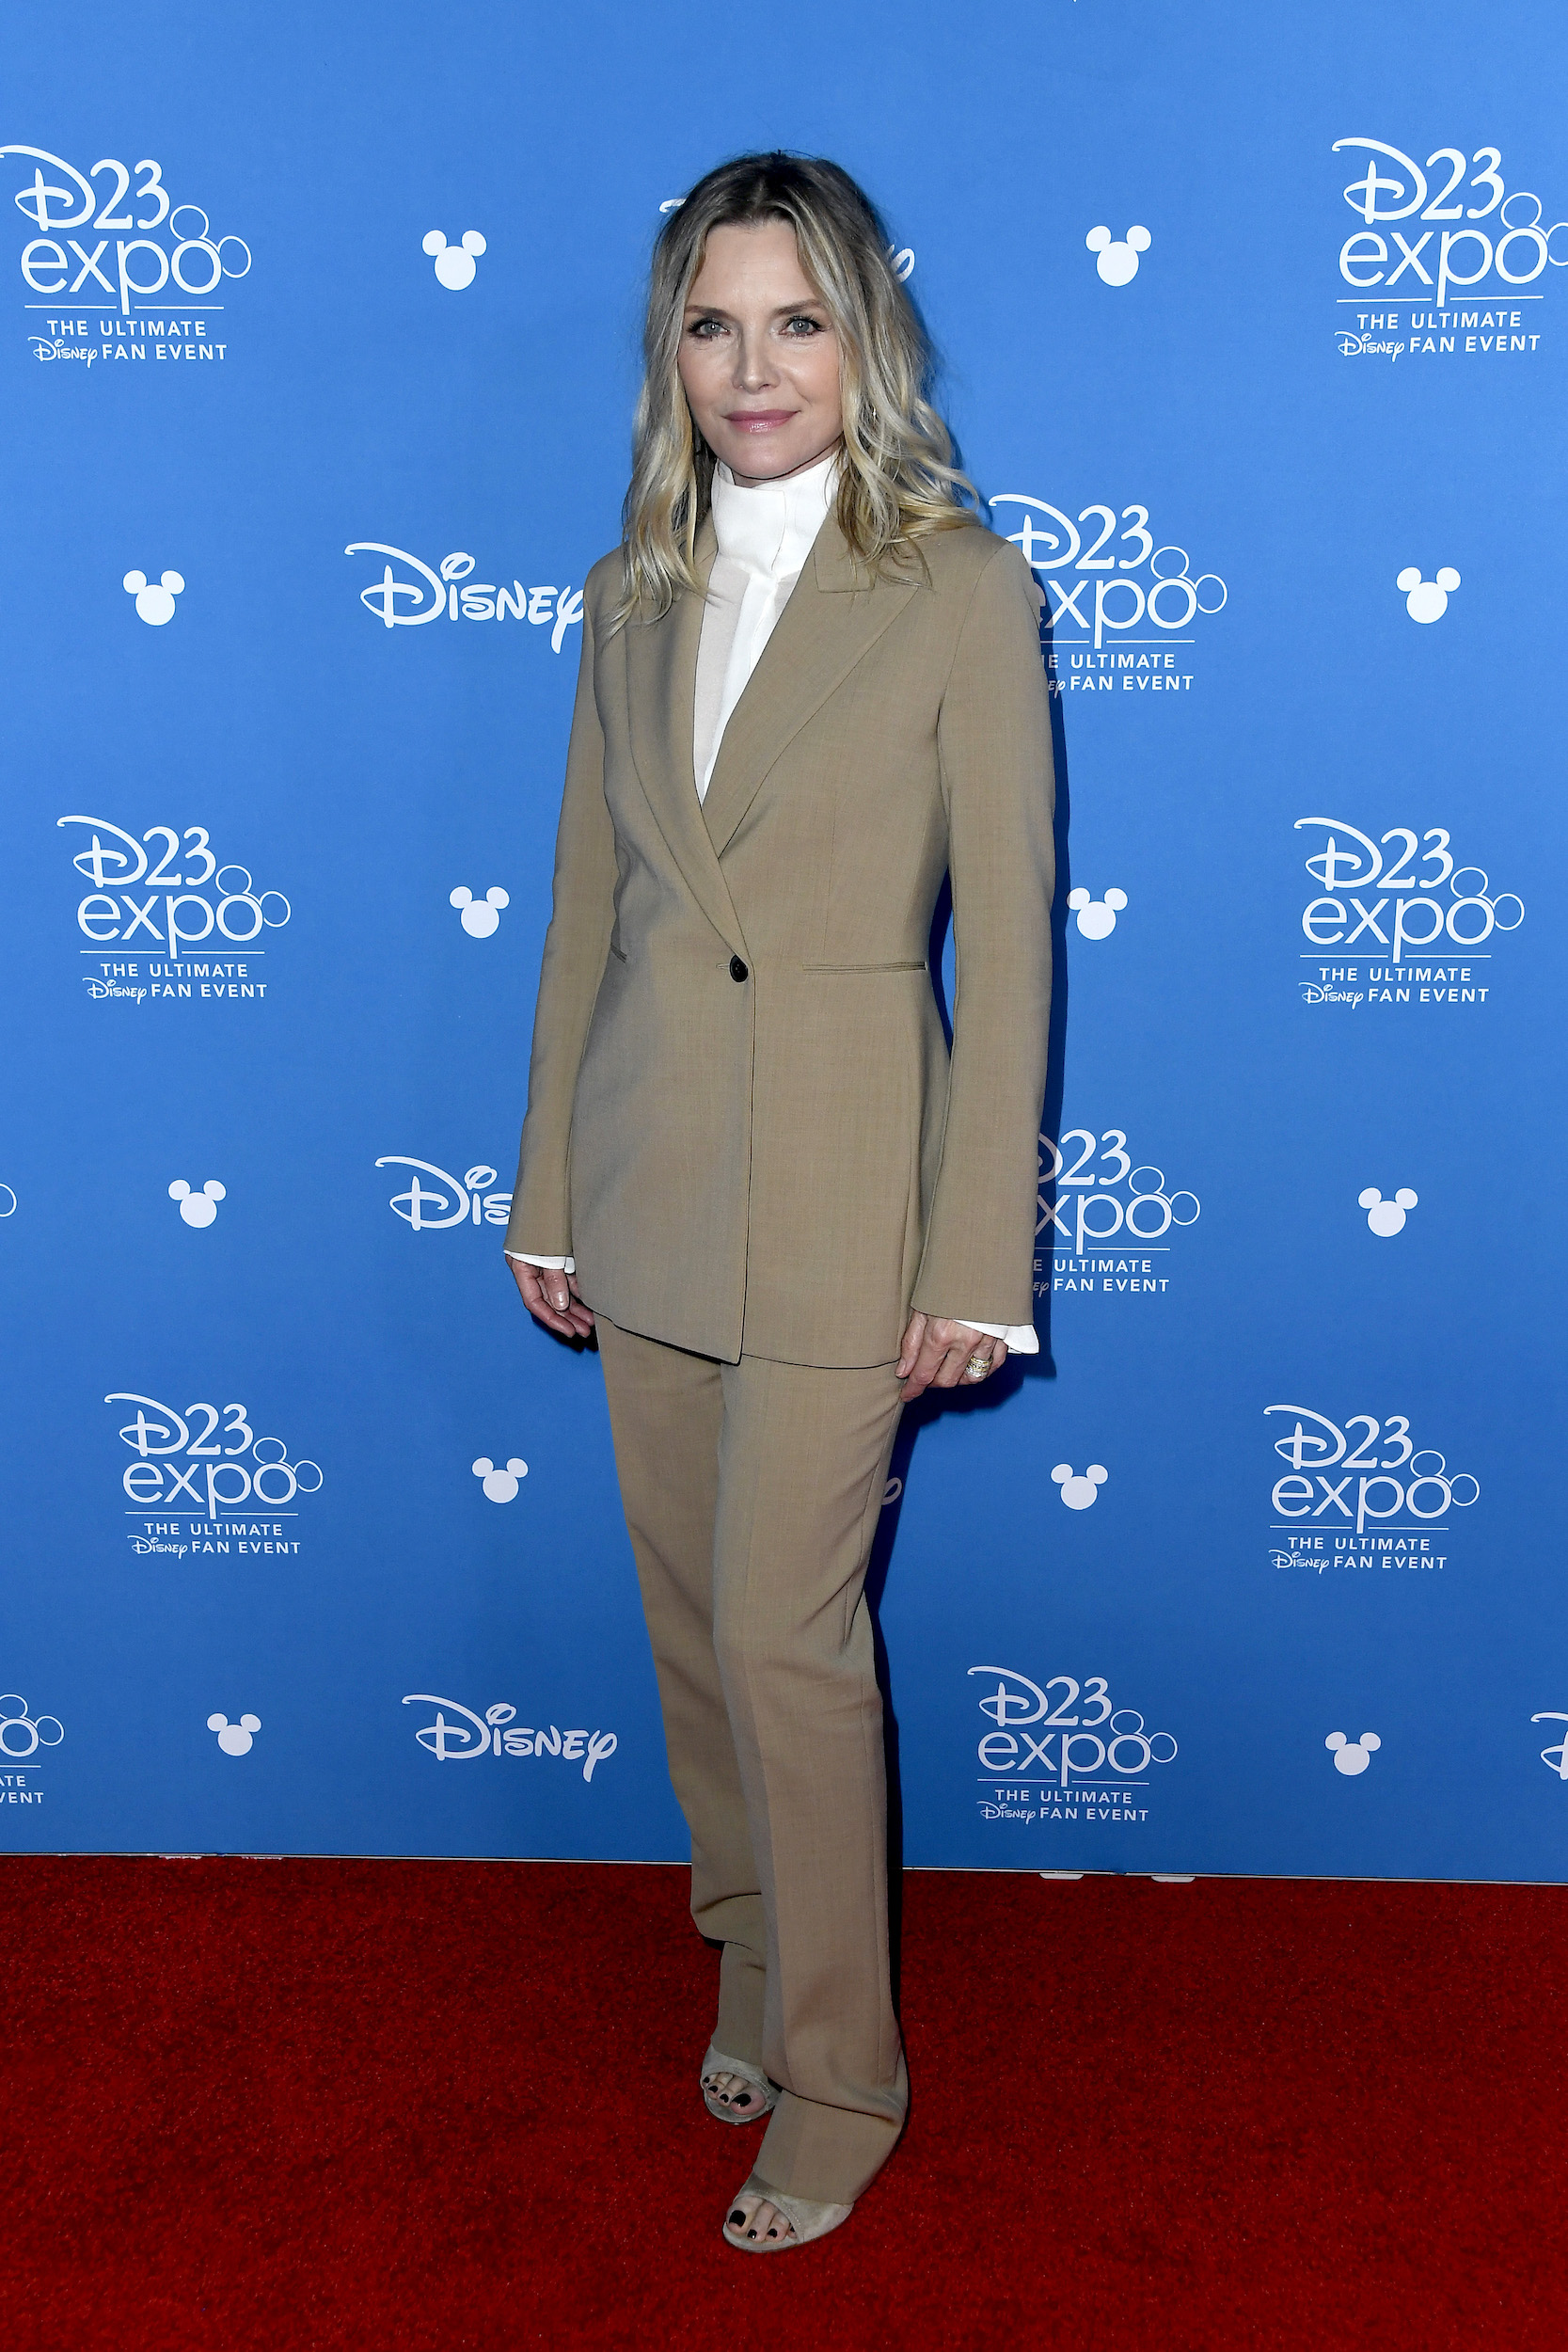 ANAHEIM, CALIFORNIA - AUGUST 24: Michelle Pfeiffer attends Go Behind The Scenes with Walt Disney Studios during D23 Expo 2019 at Anaheim Convention Center on August 24, 2019 in Anaheim, California. (Photo by Frazer Harrison/Getty Images)